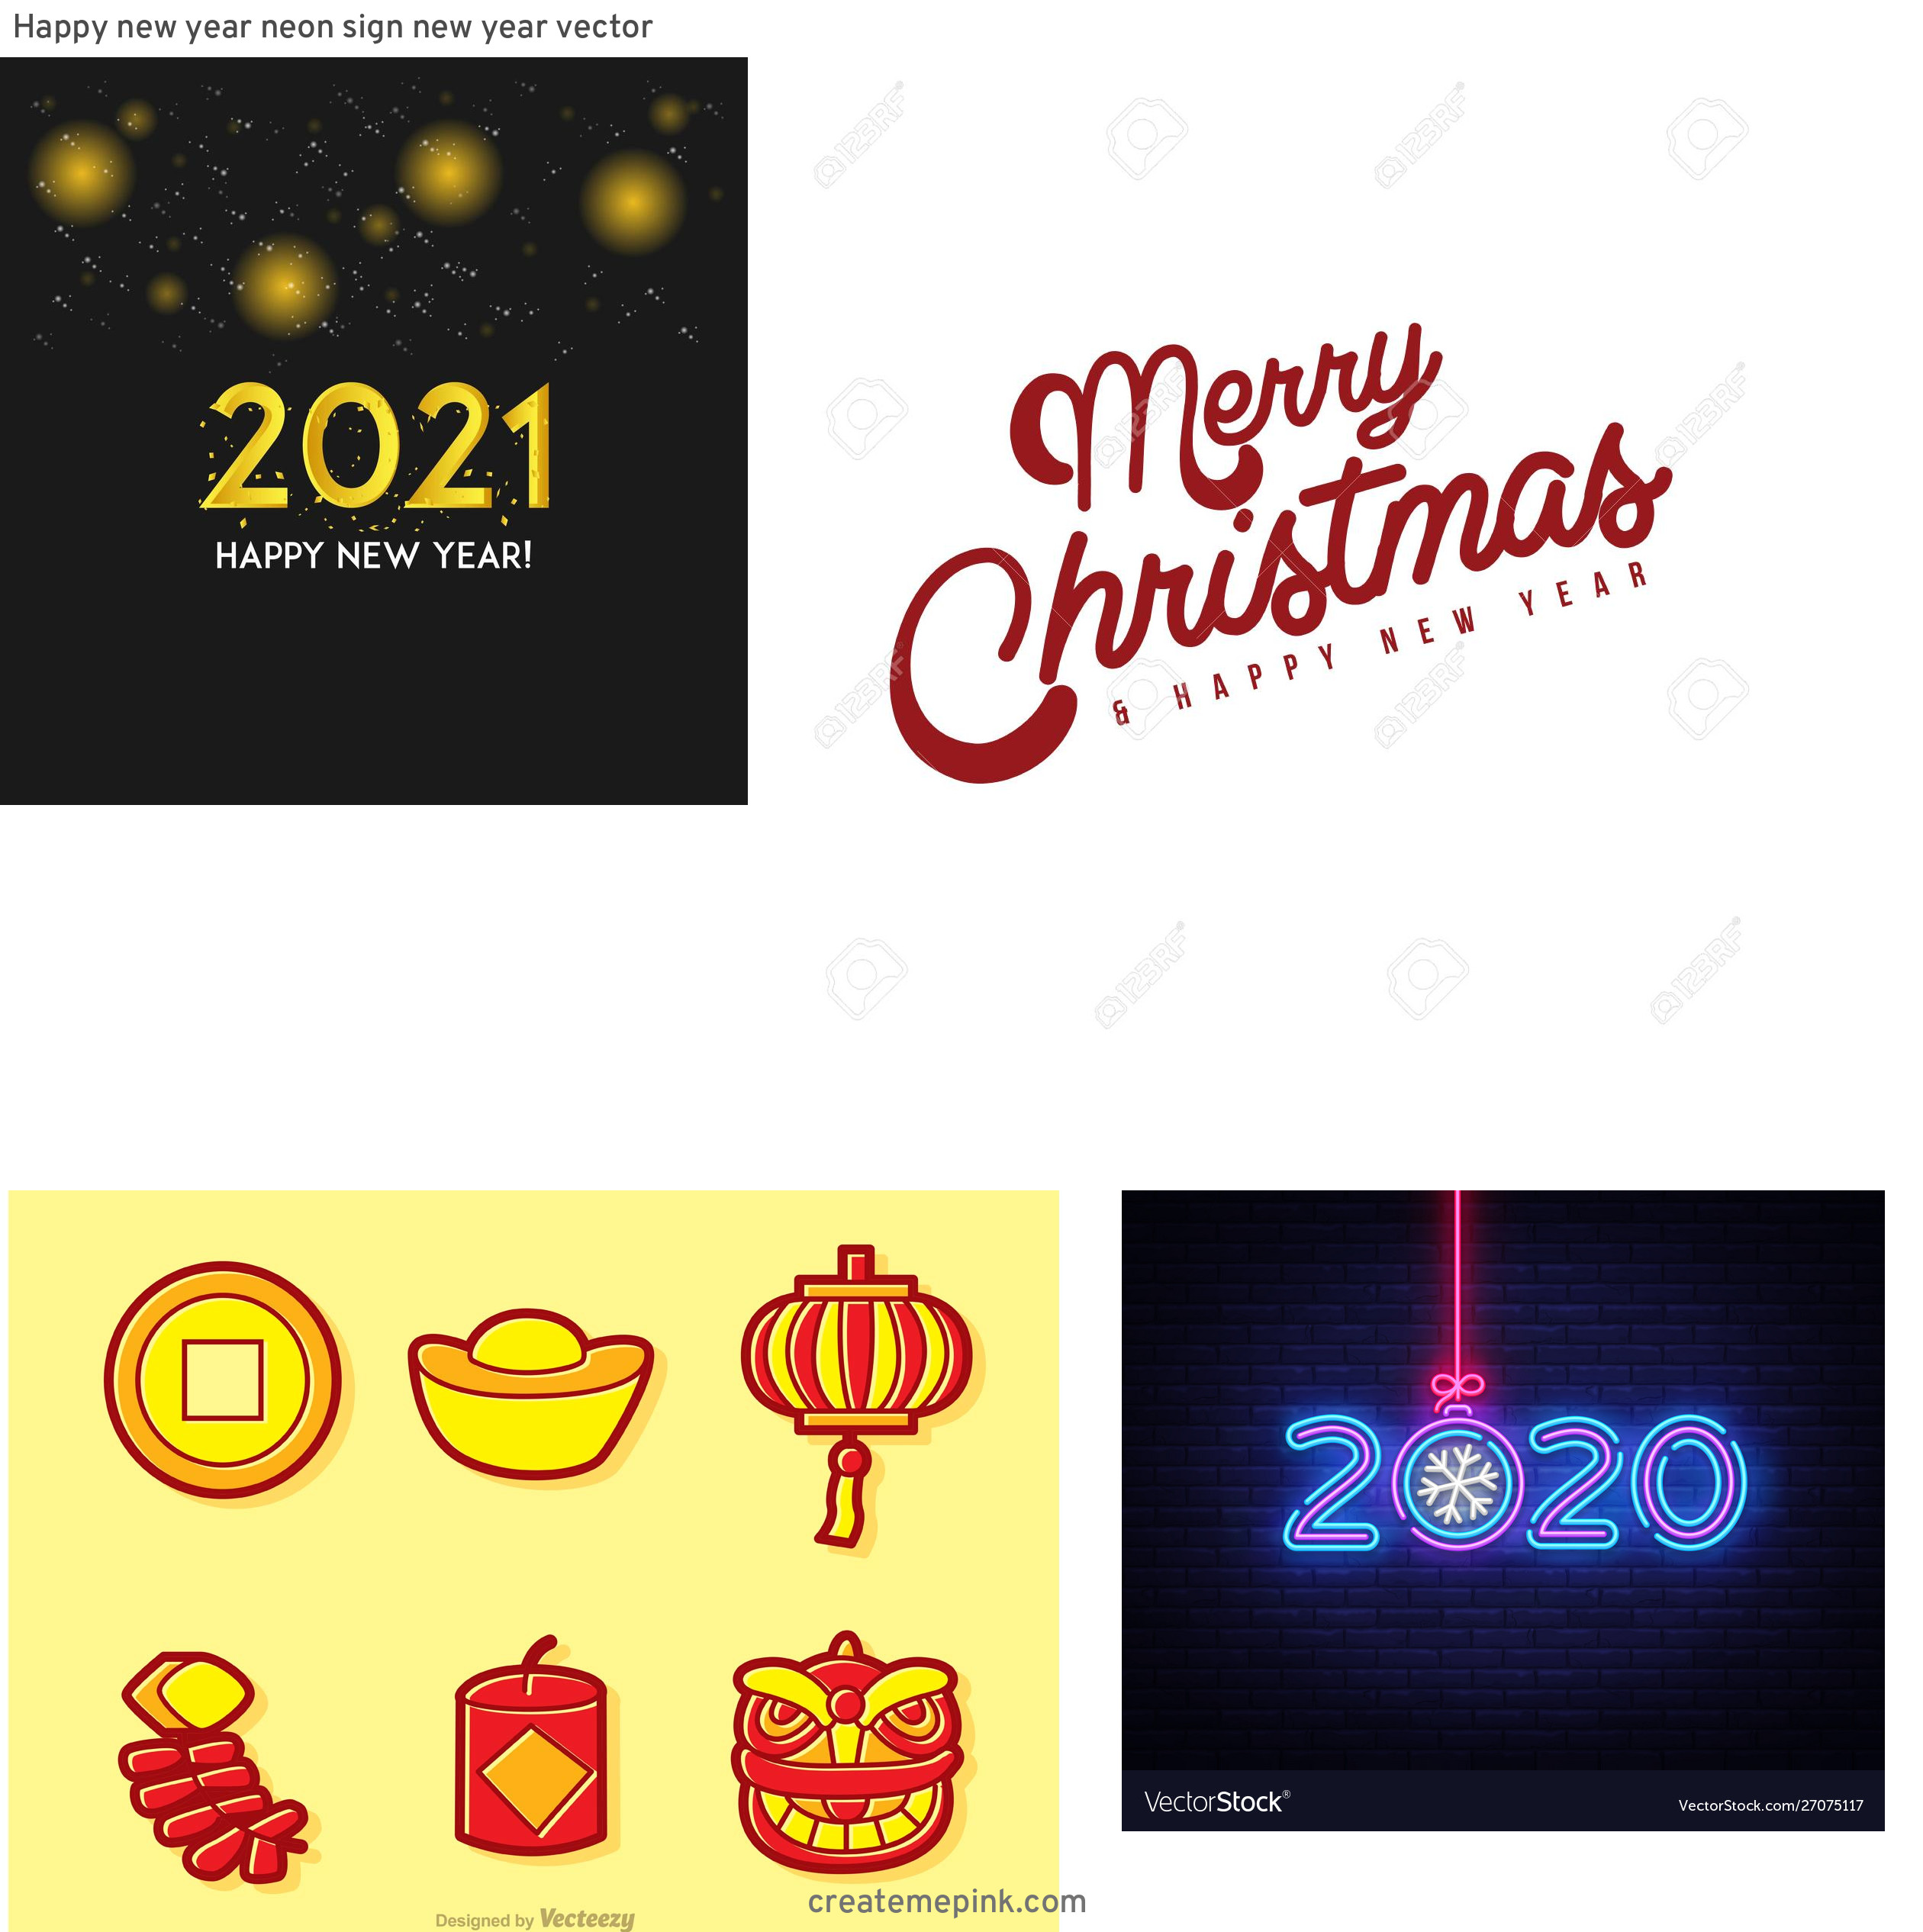 Free New Year Vector: Happy New Year Neon Sign New Year Vector